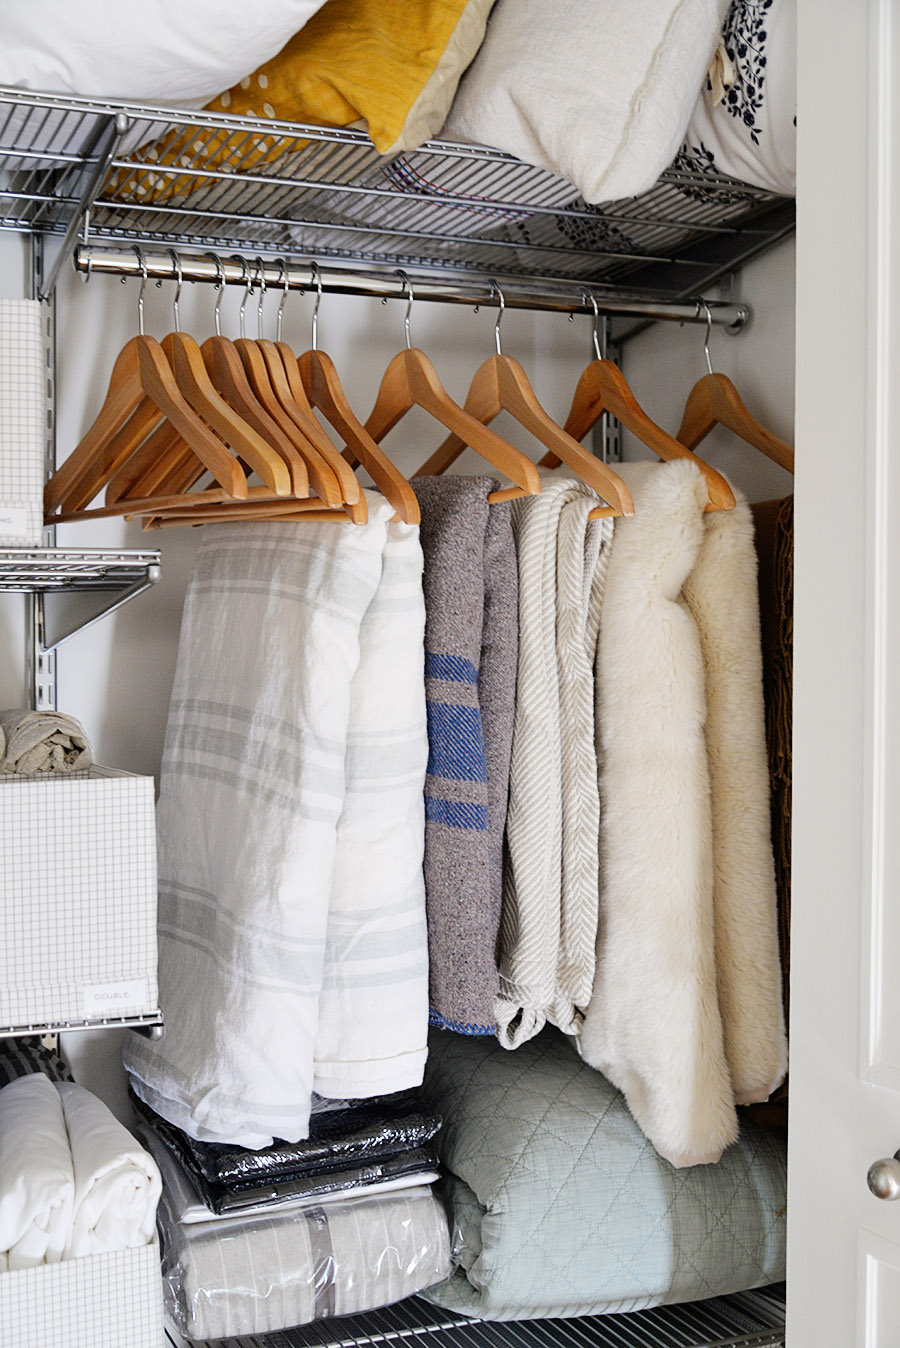 linen closet organization ideas, ideas for linen closet, how to store blankets, blankets on hangers